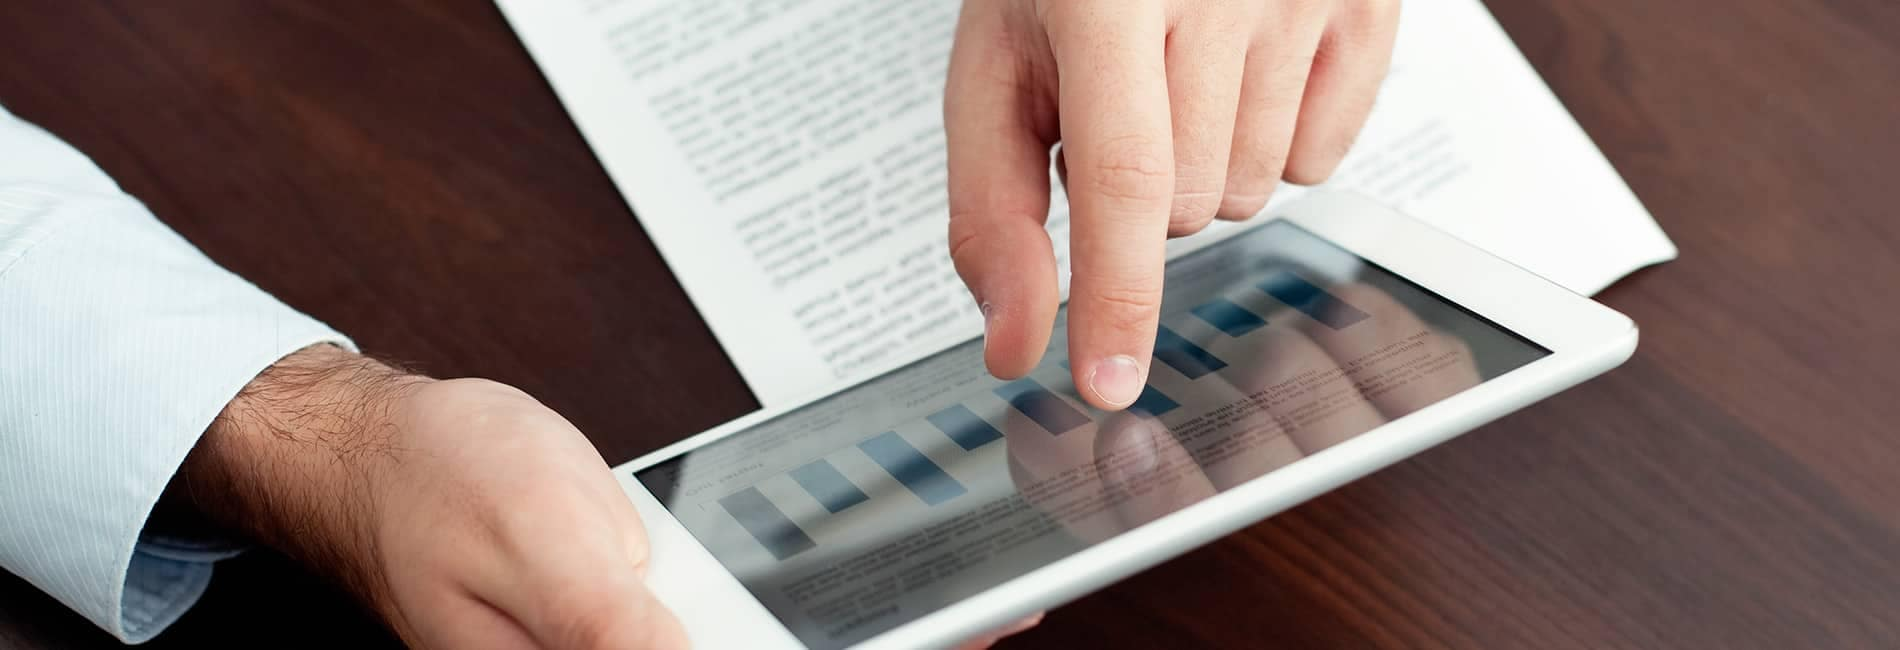 Person using tablet with graphs